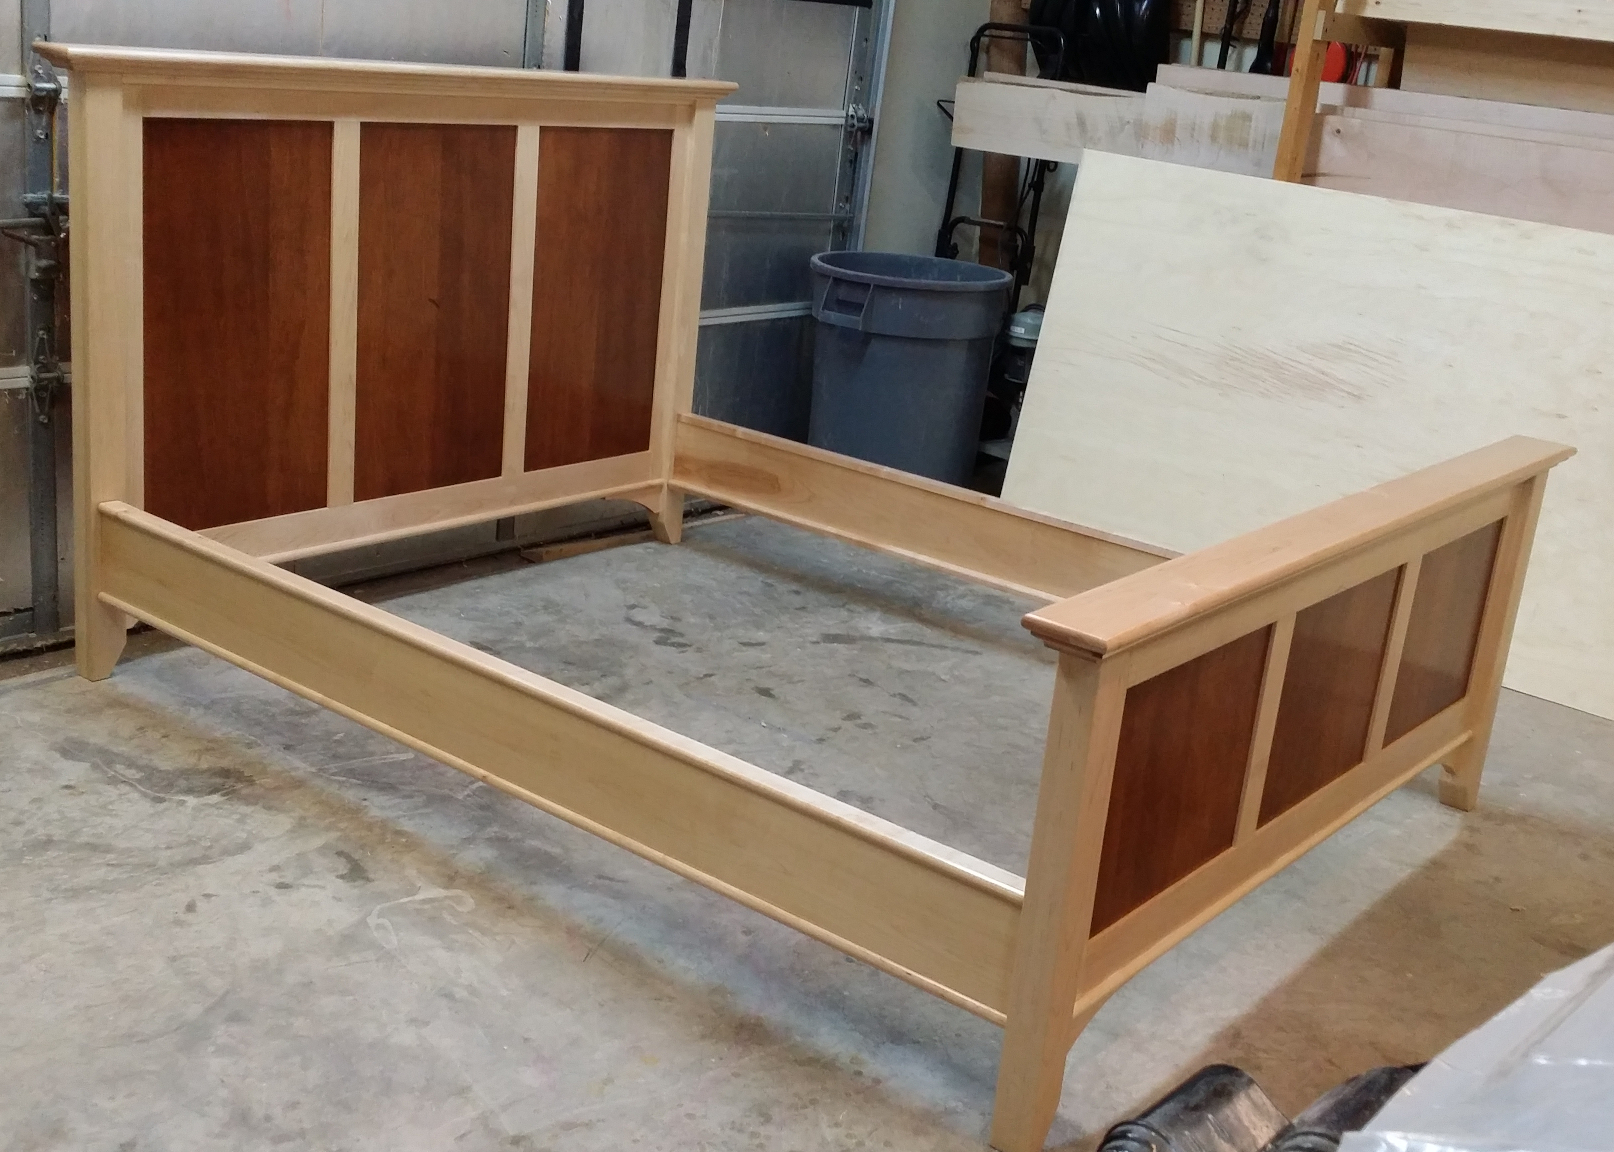 Maple Bedroom Set | Diary of a Wood Nerd